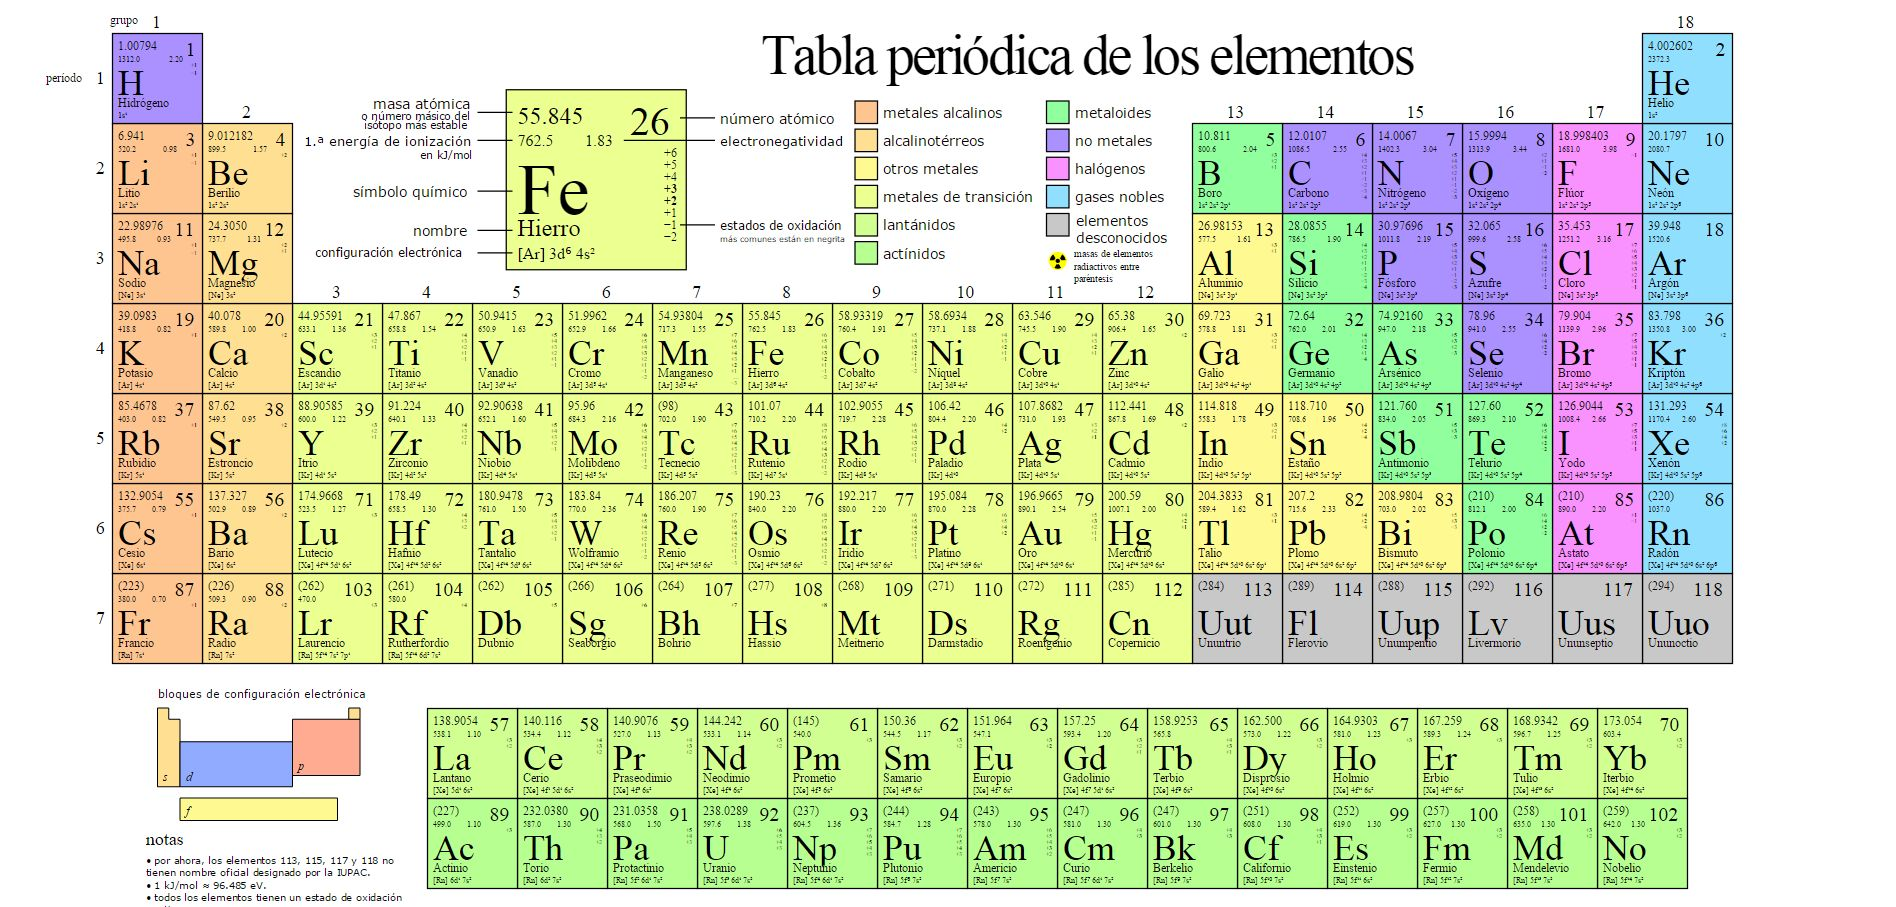 Tabla peridica de elementos qumicos periodic tables of the wolframio urtaz Choice Image